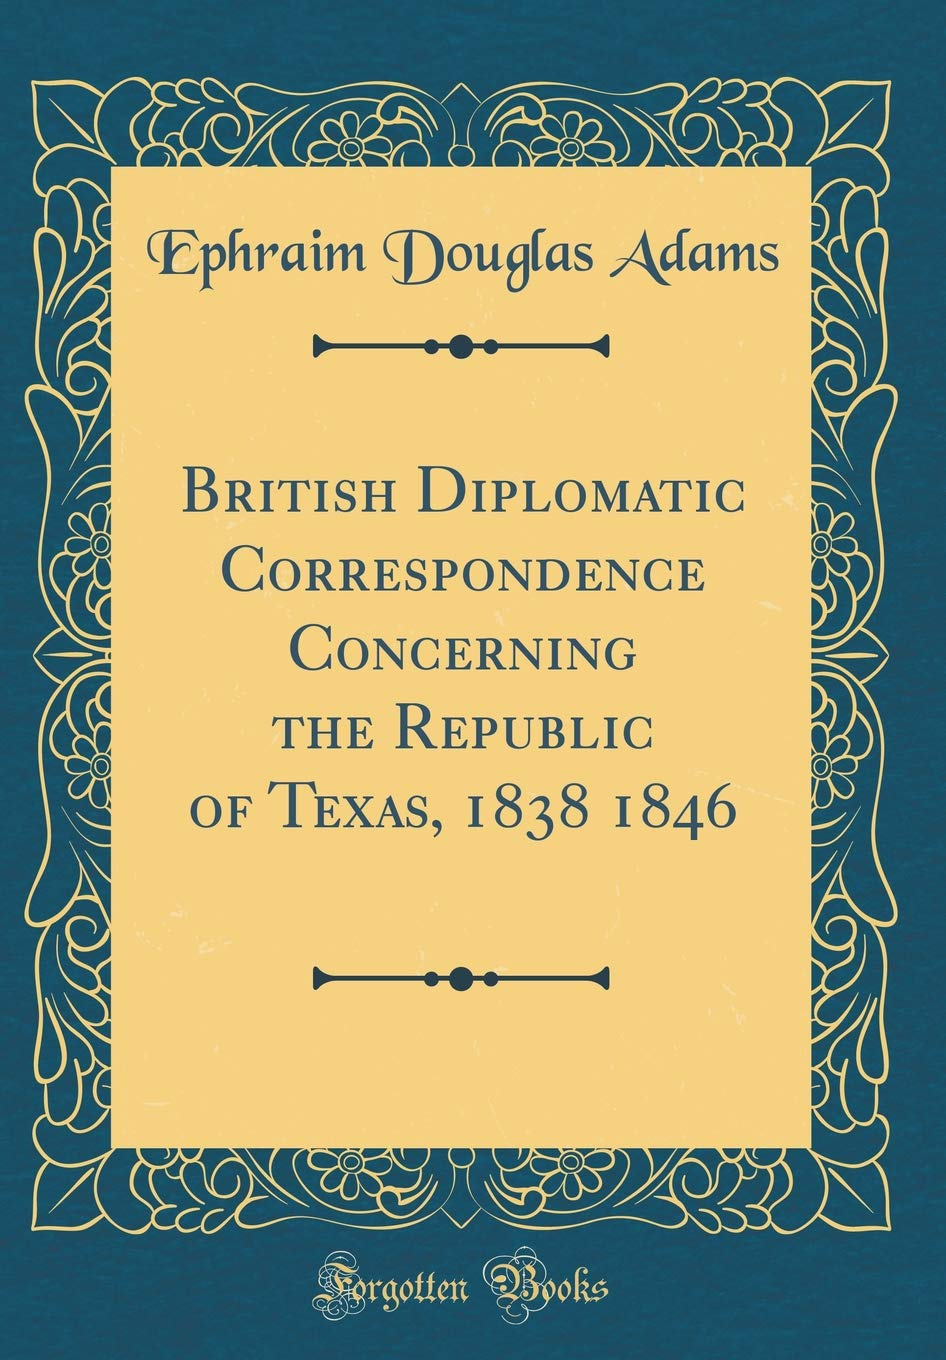 Read Online British Diplomatic Correspondence Concerning the Republic of Texas, 1838 1846 (Classic Reprint) ebook